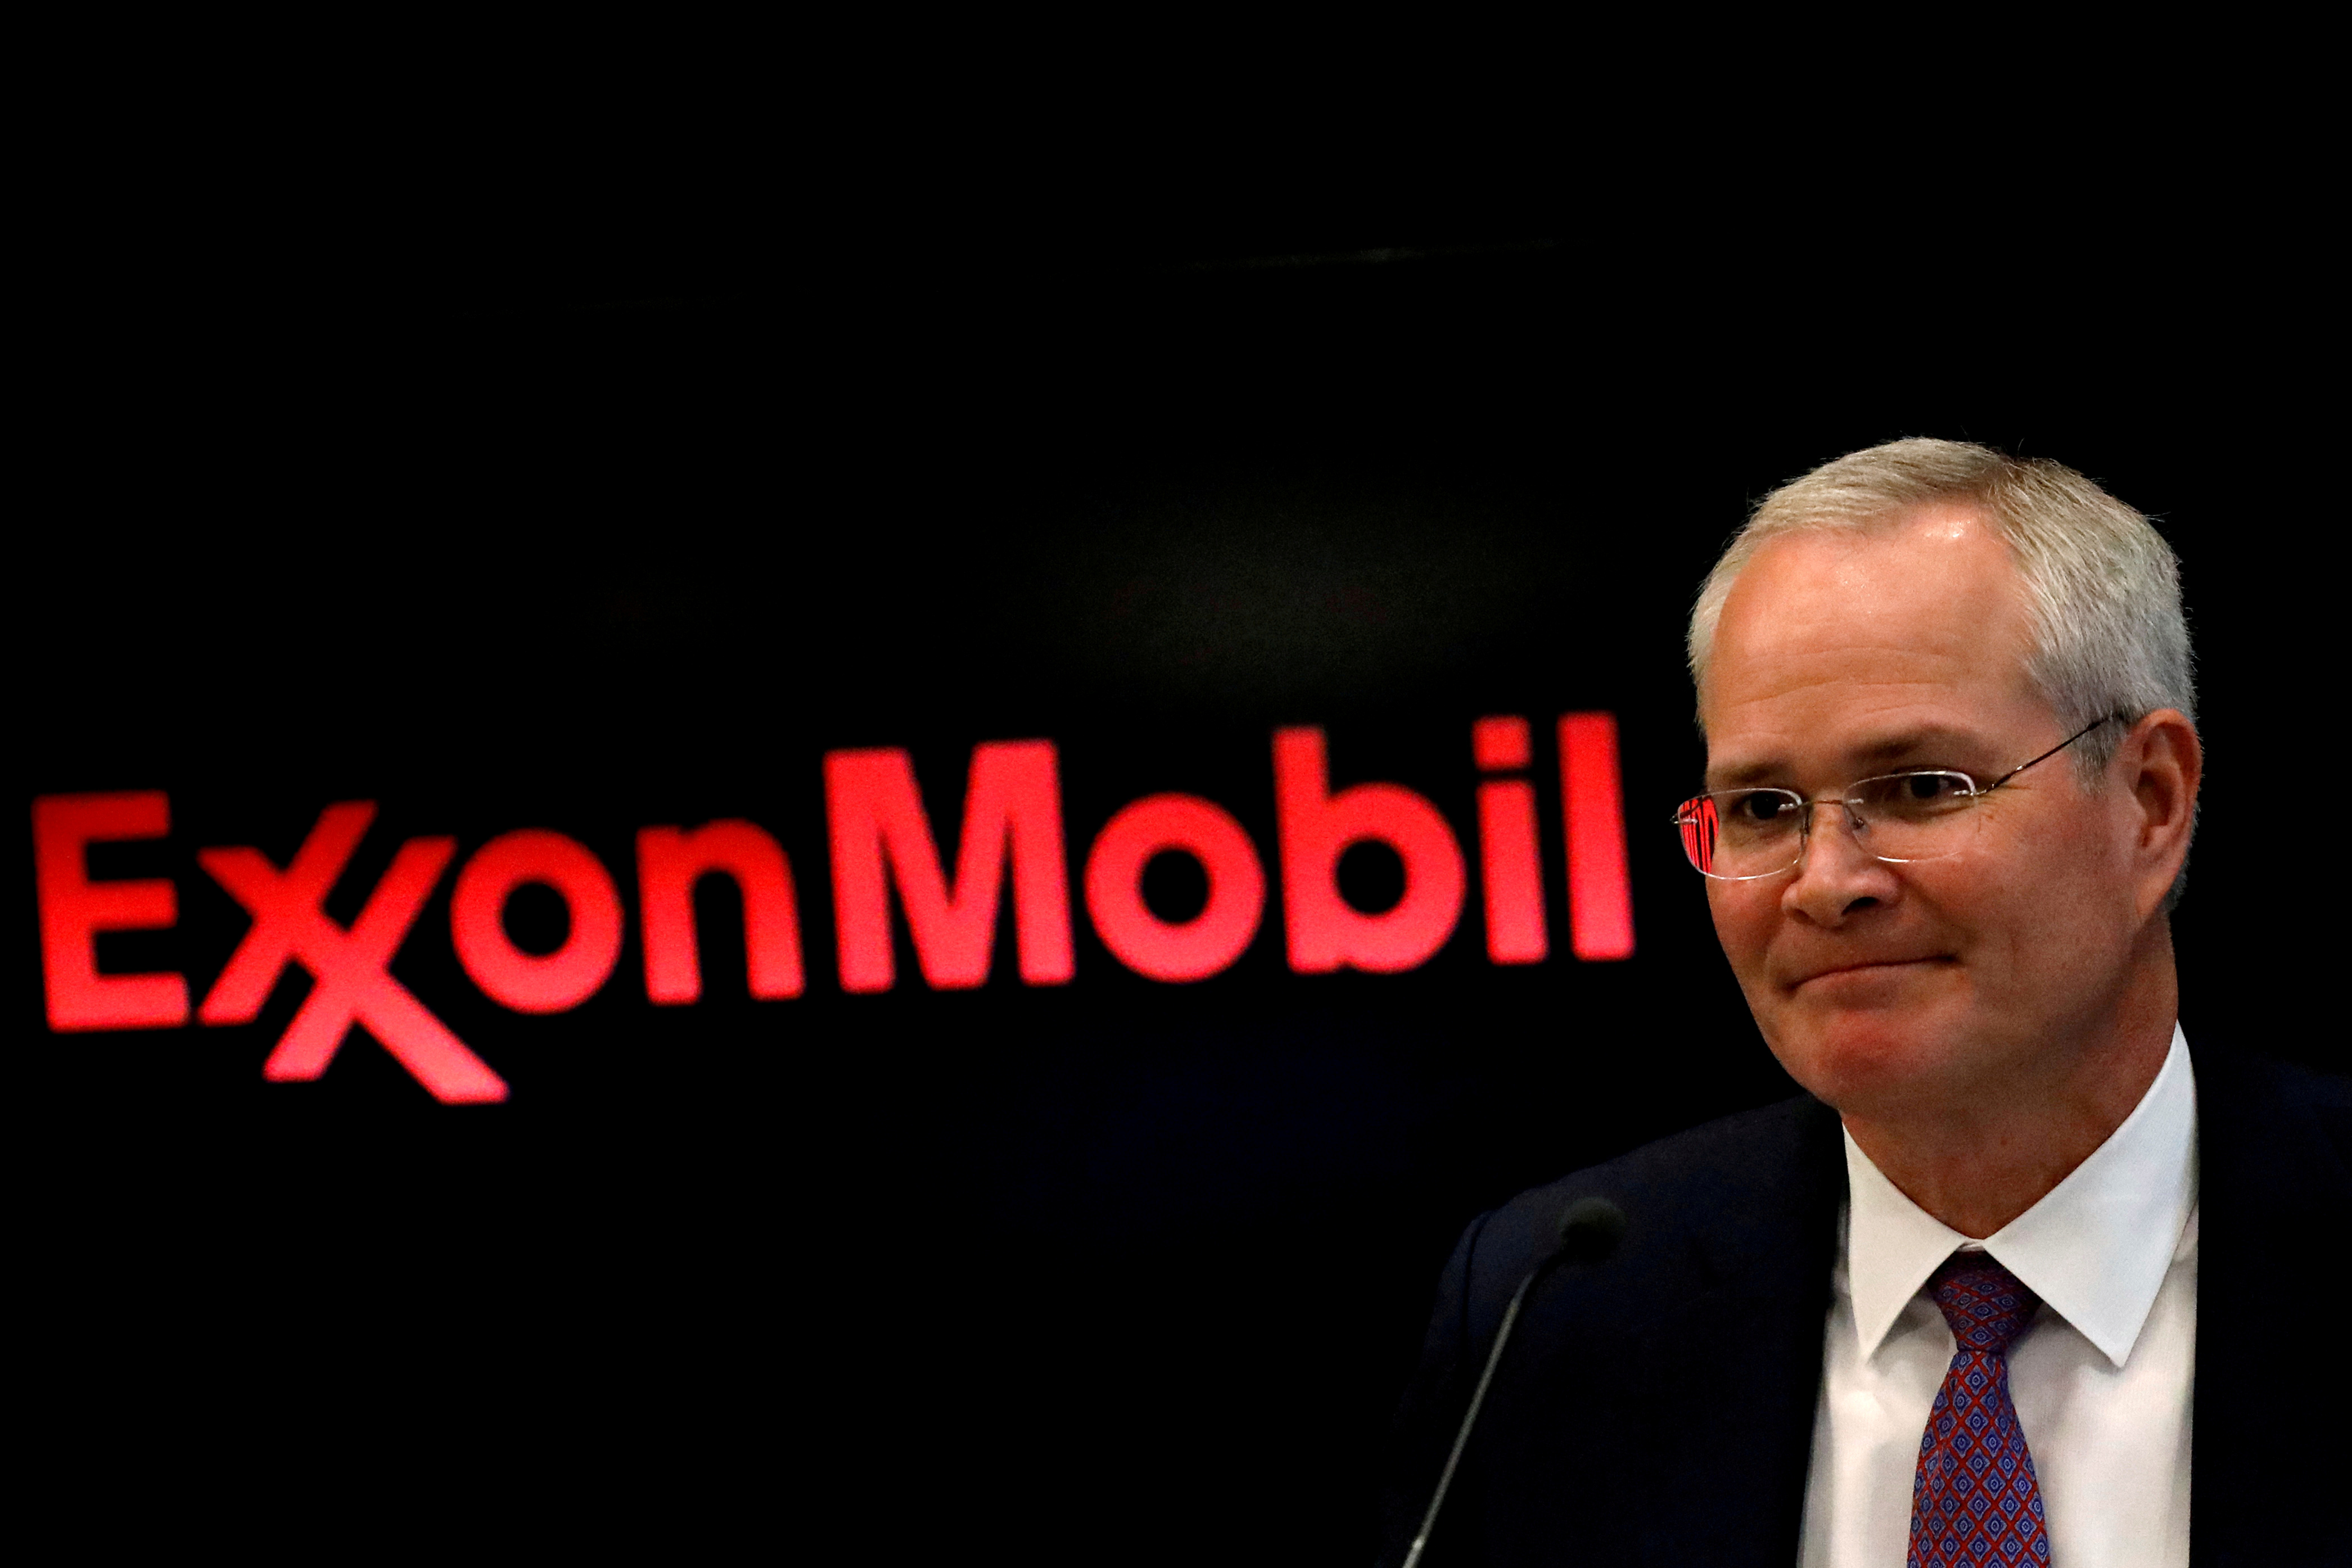 Darren Woods, Chairman & CEO of Exxon Mobil Corporation attends a news conference at the New York Stock Exchange (NYSE) in New York, U.S., March 1, 2017. REUTERS/Brendan McDermid/File Photo